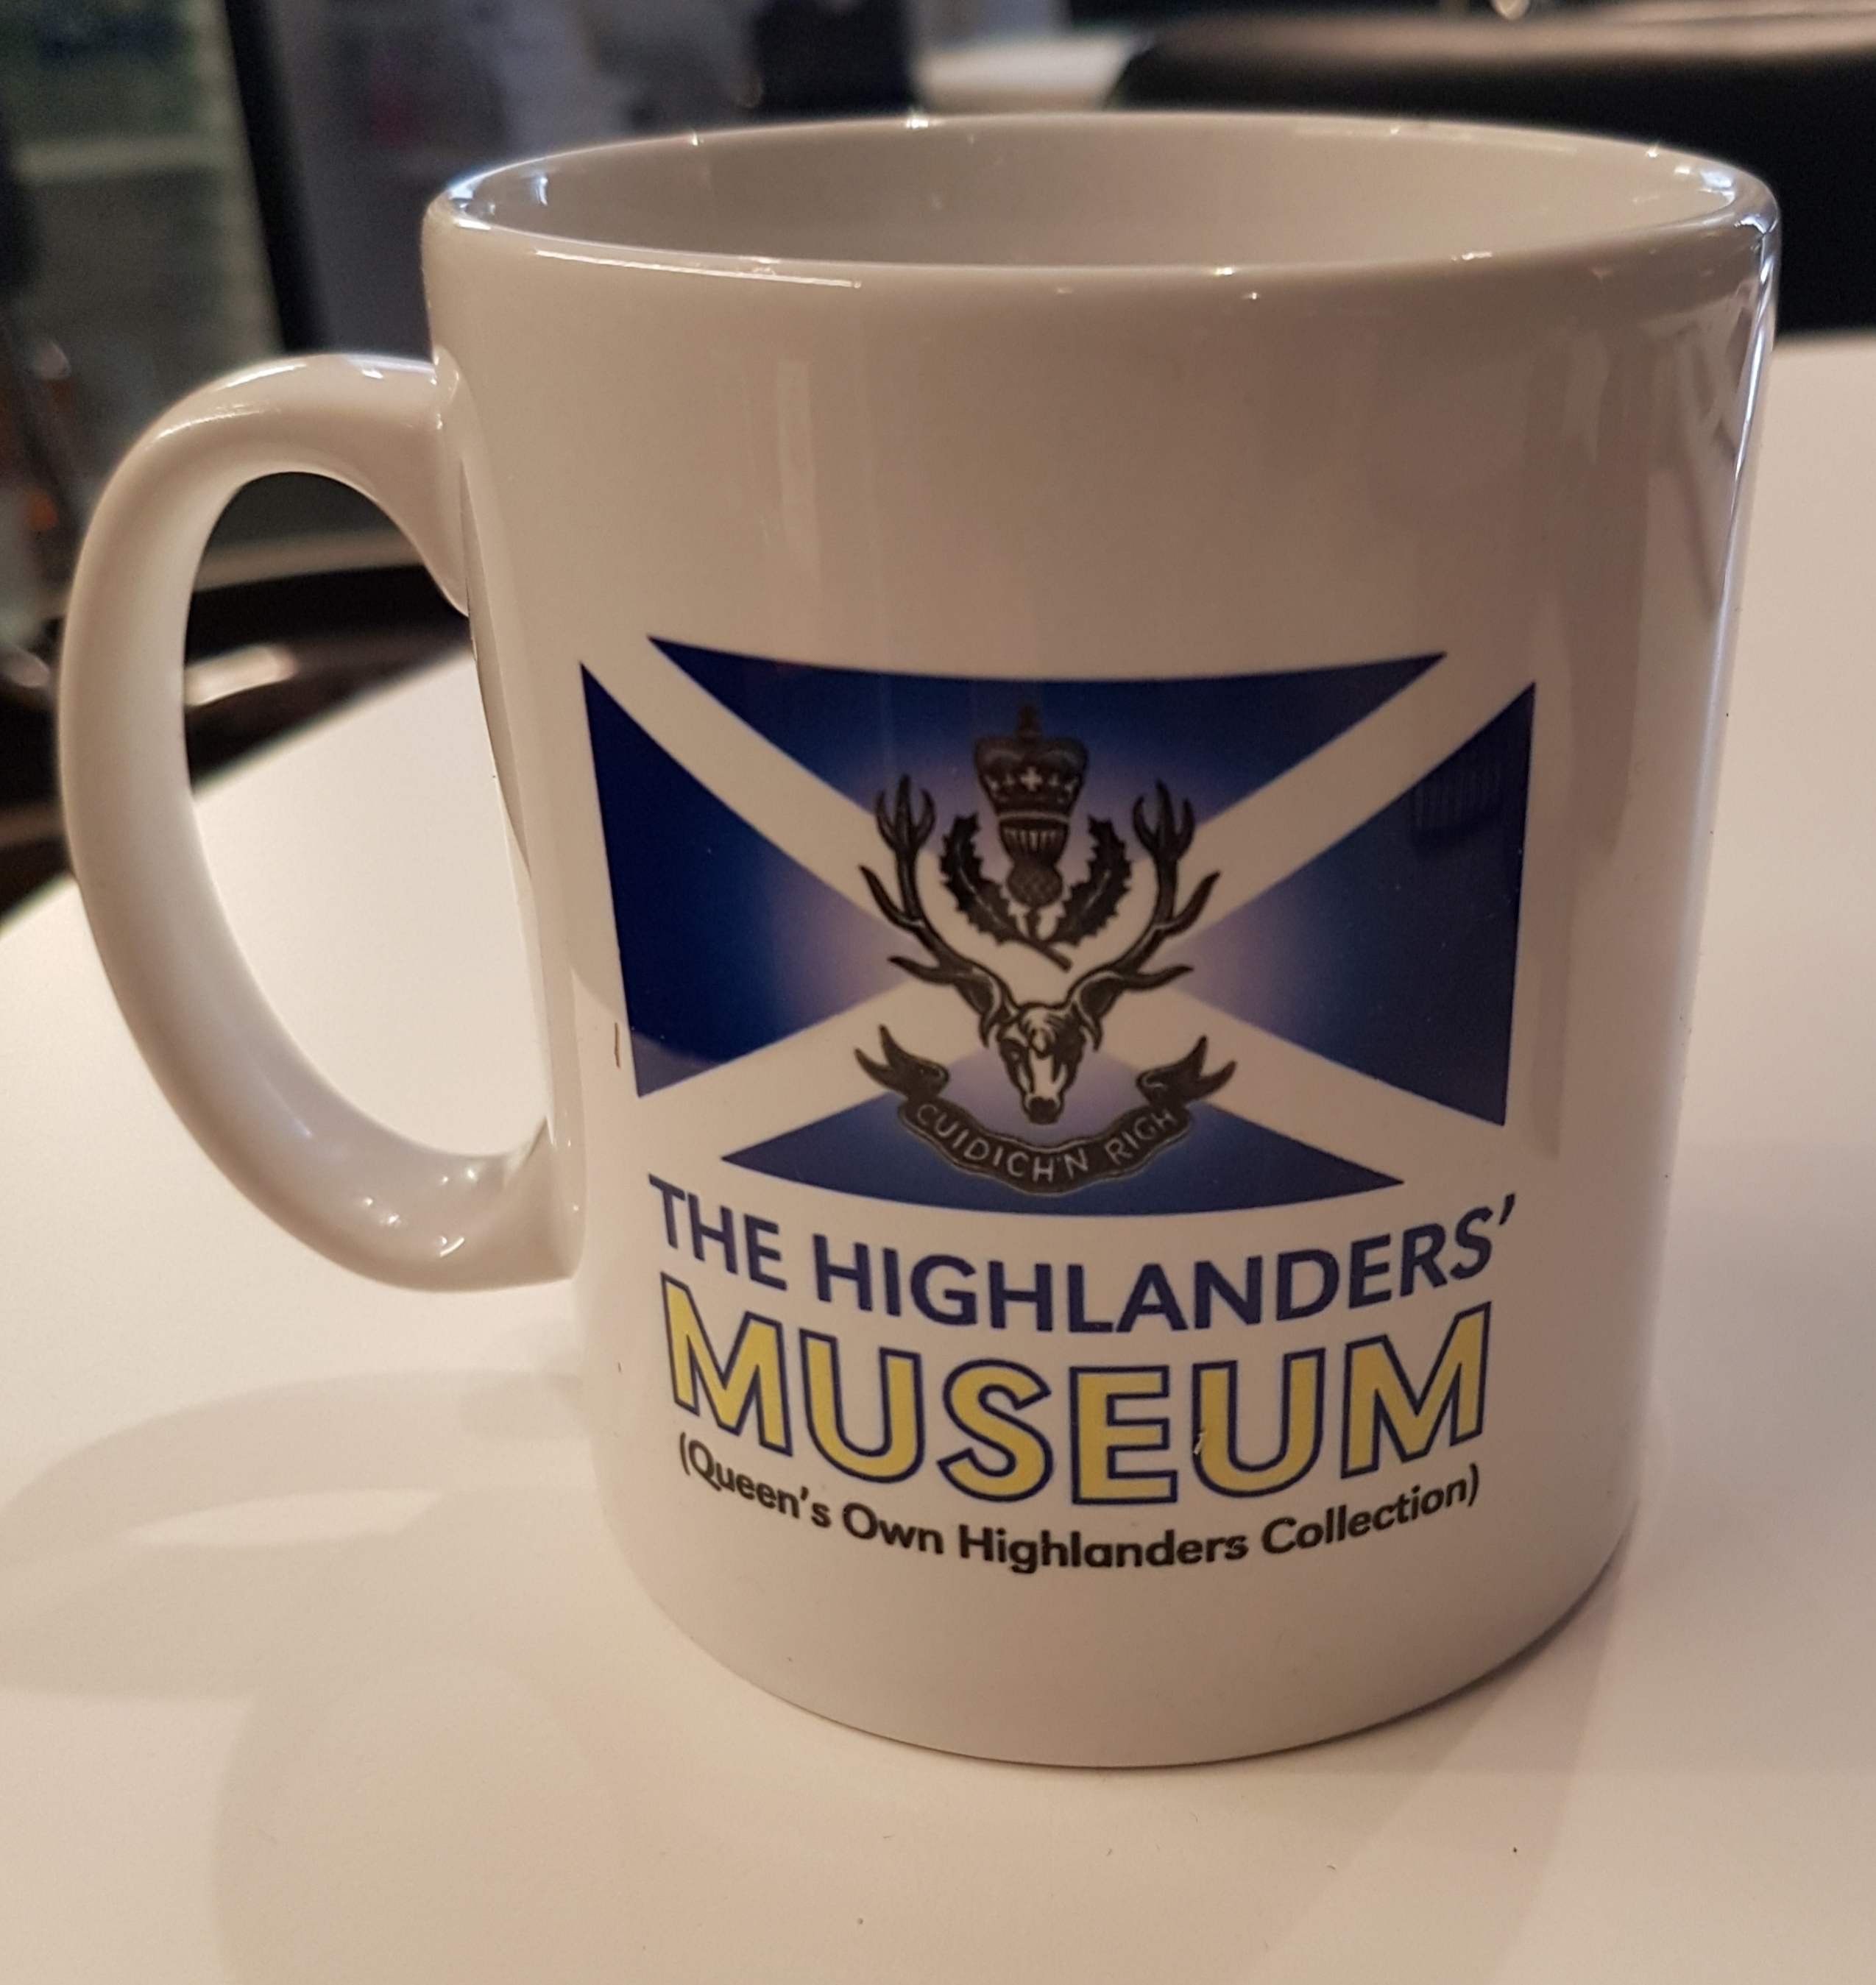 The Highlanders' Museum Mug